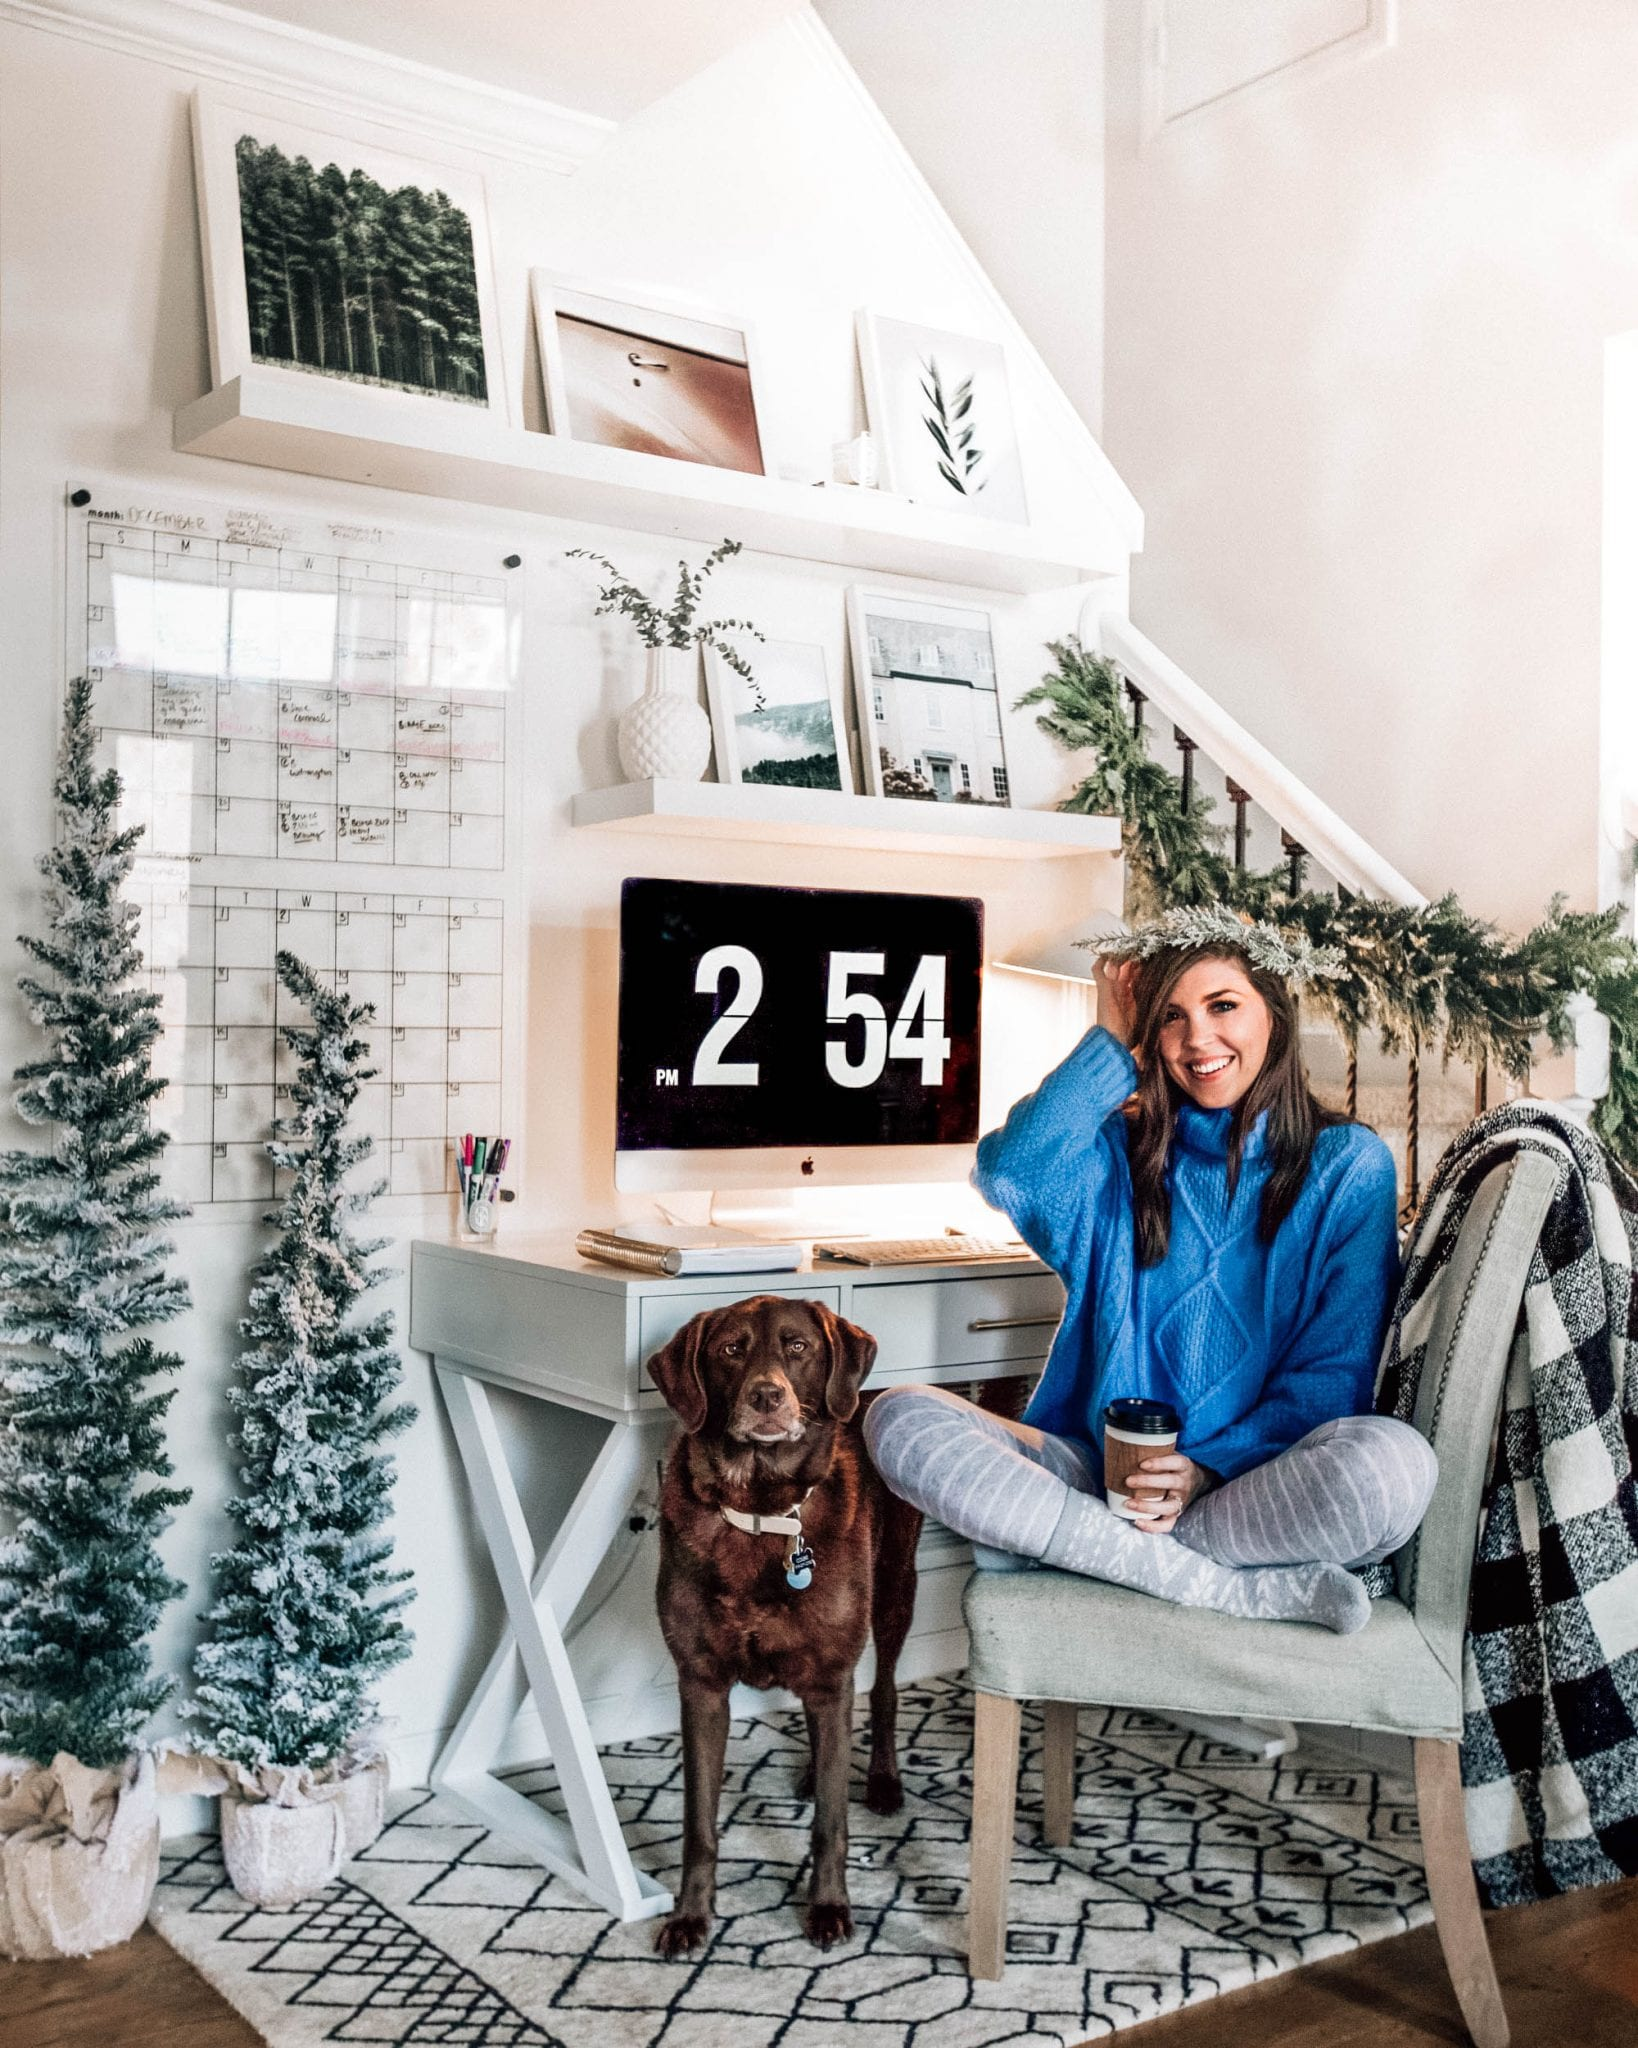 Secret Santa and Other Small Gift Ideas (Under $25)